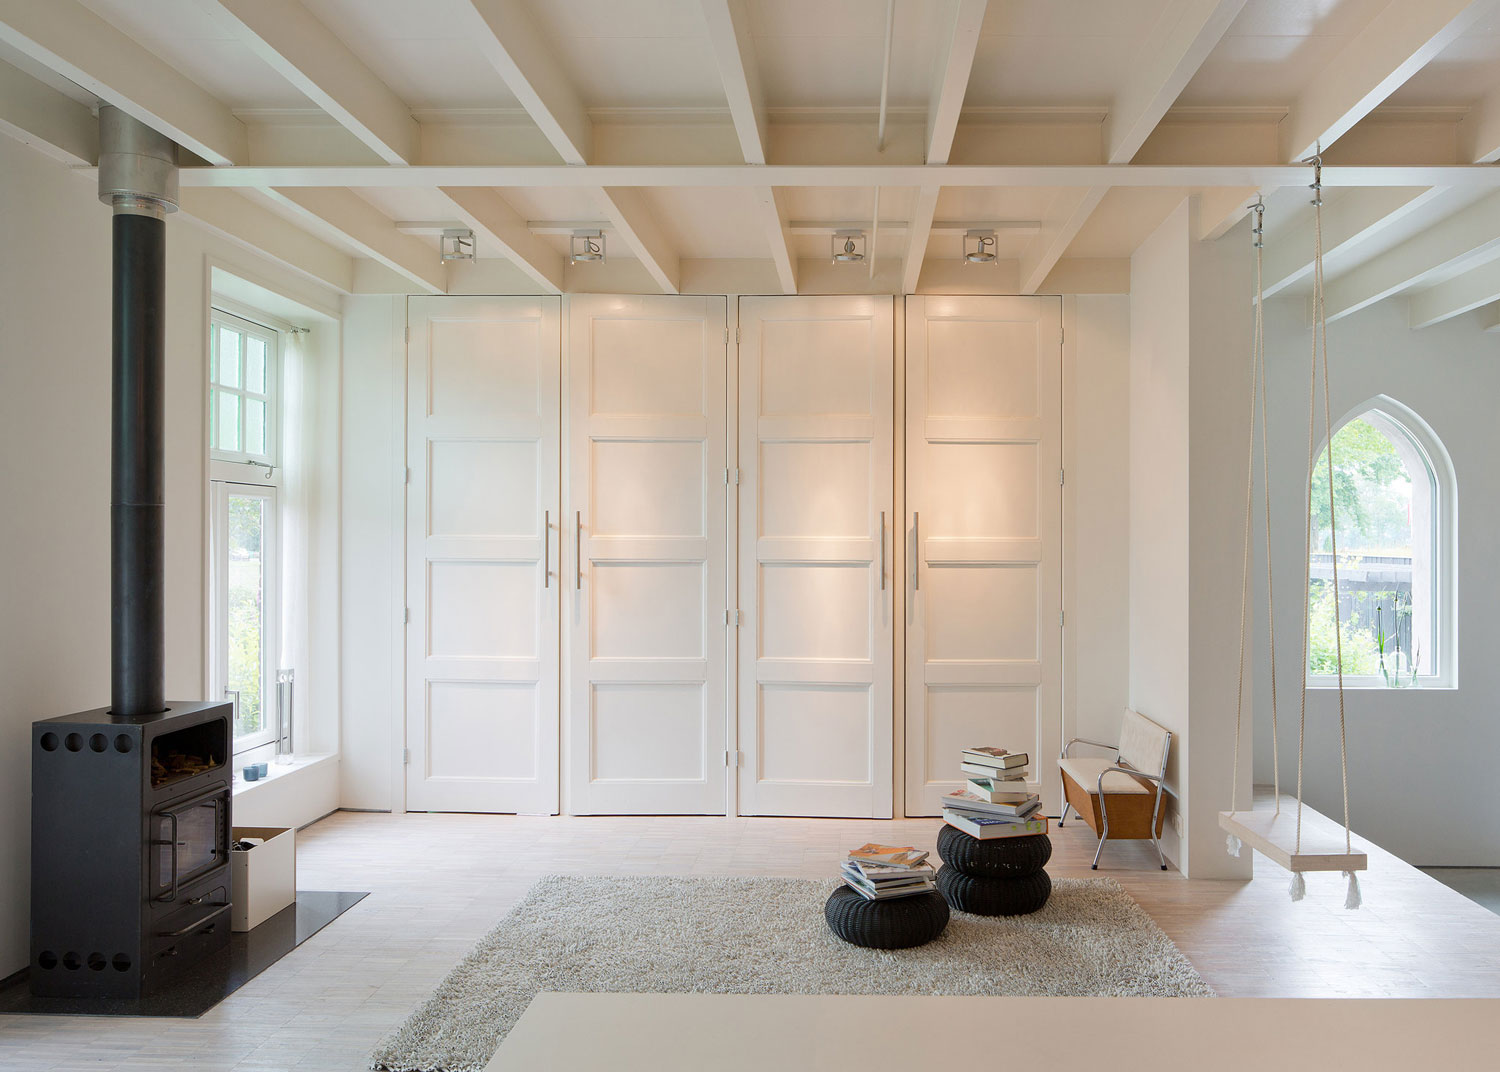 Ronald Olthof & Sofie Suiker's Home | Yellowtrace